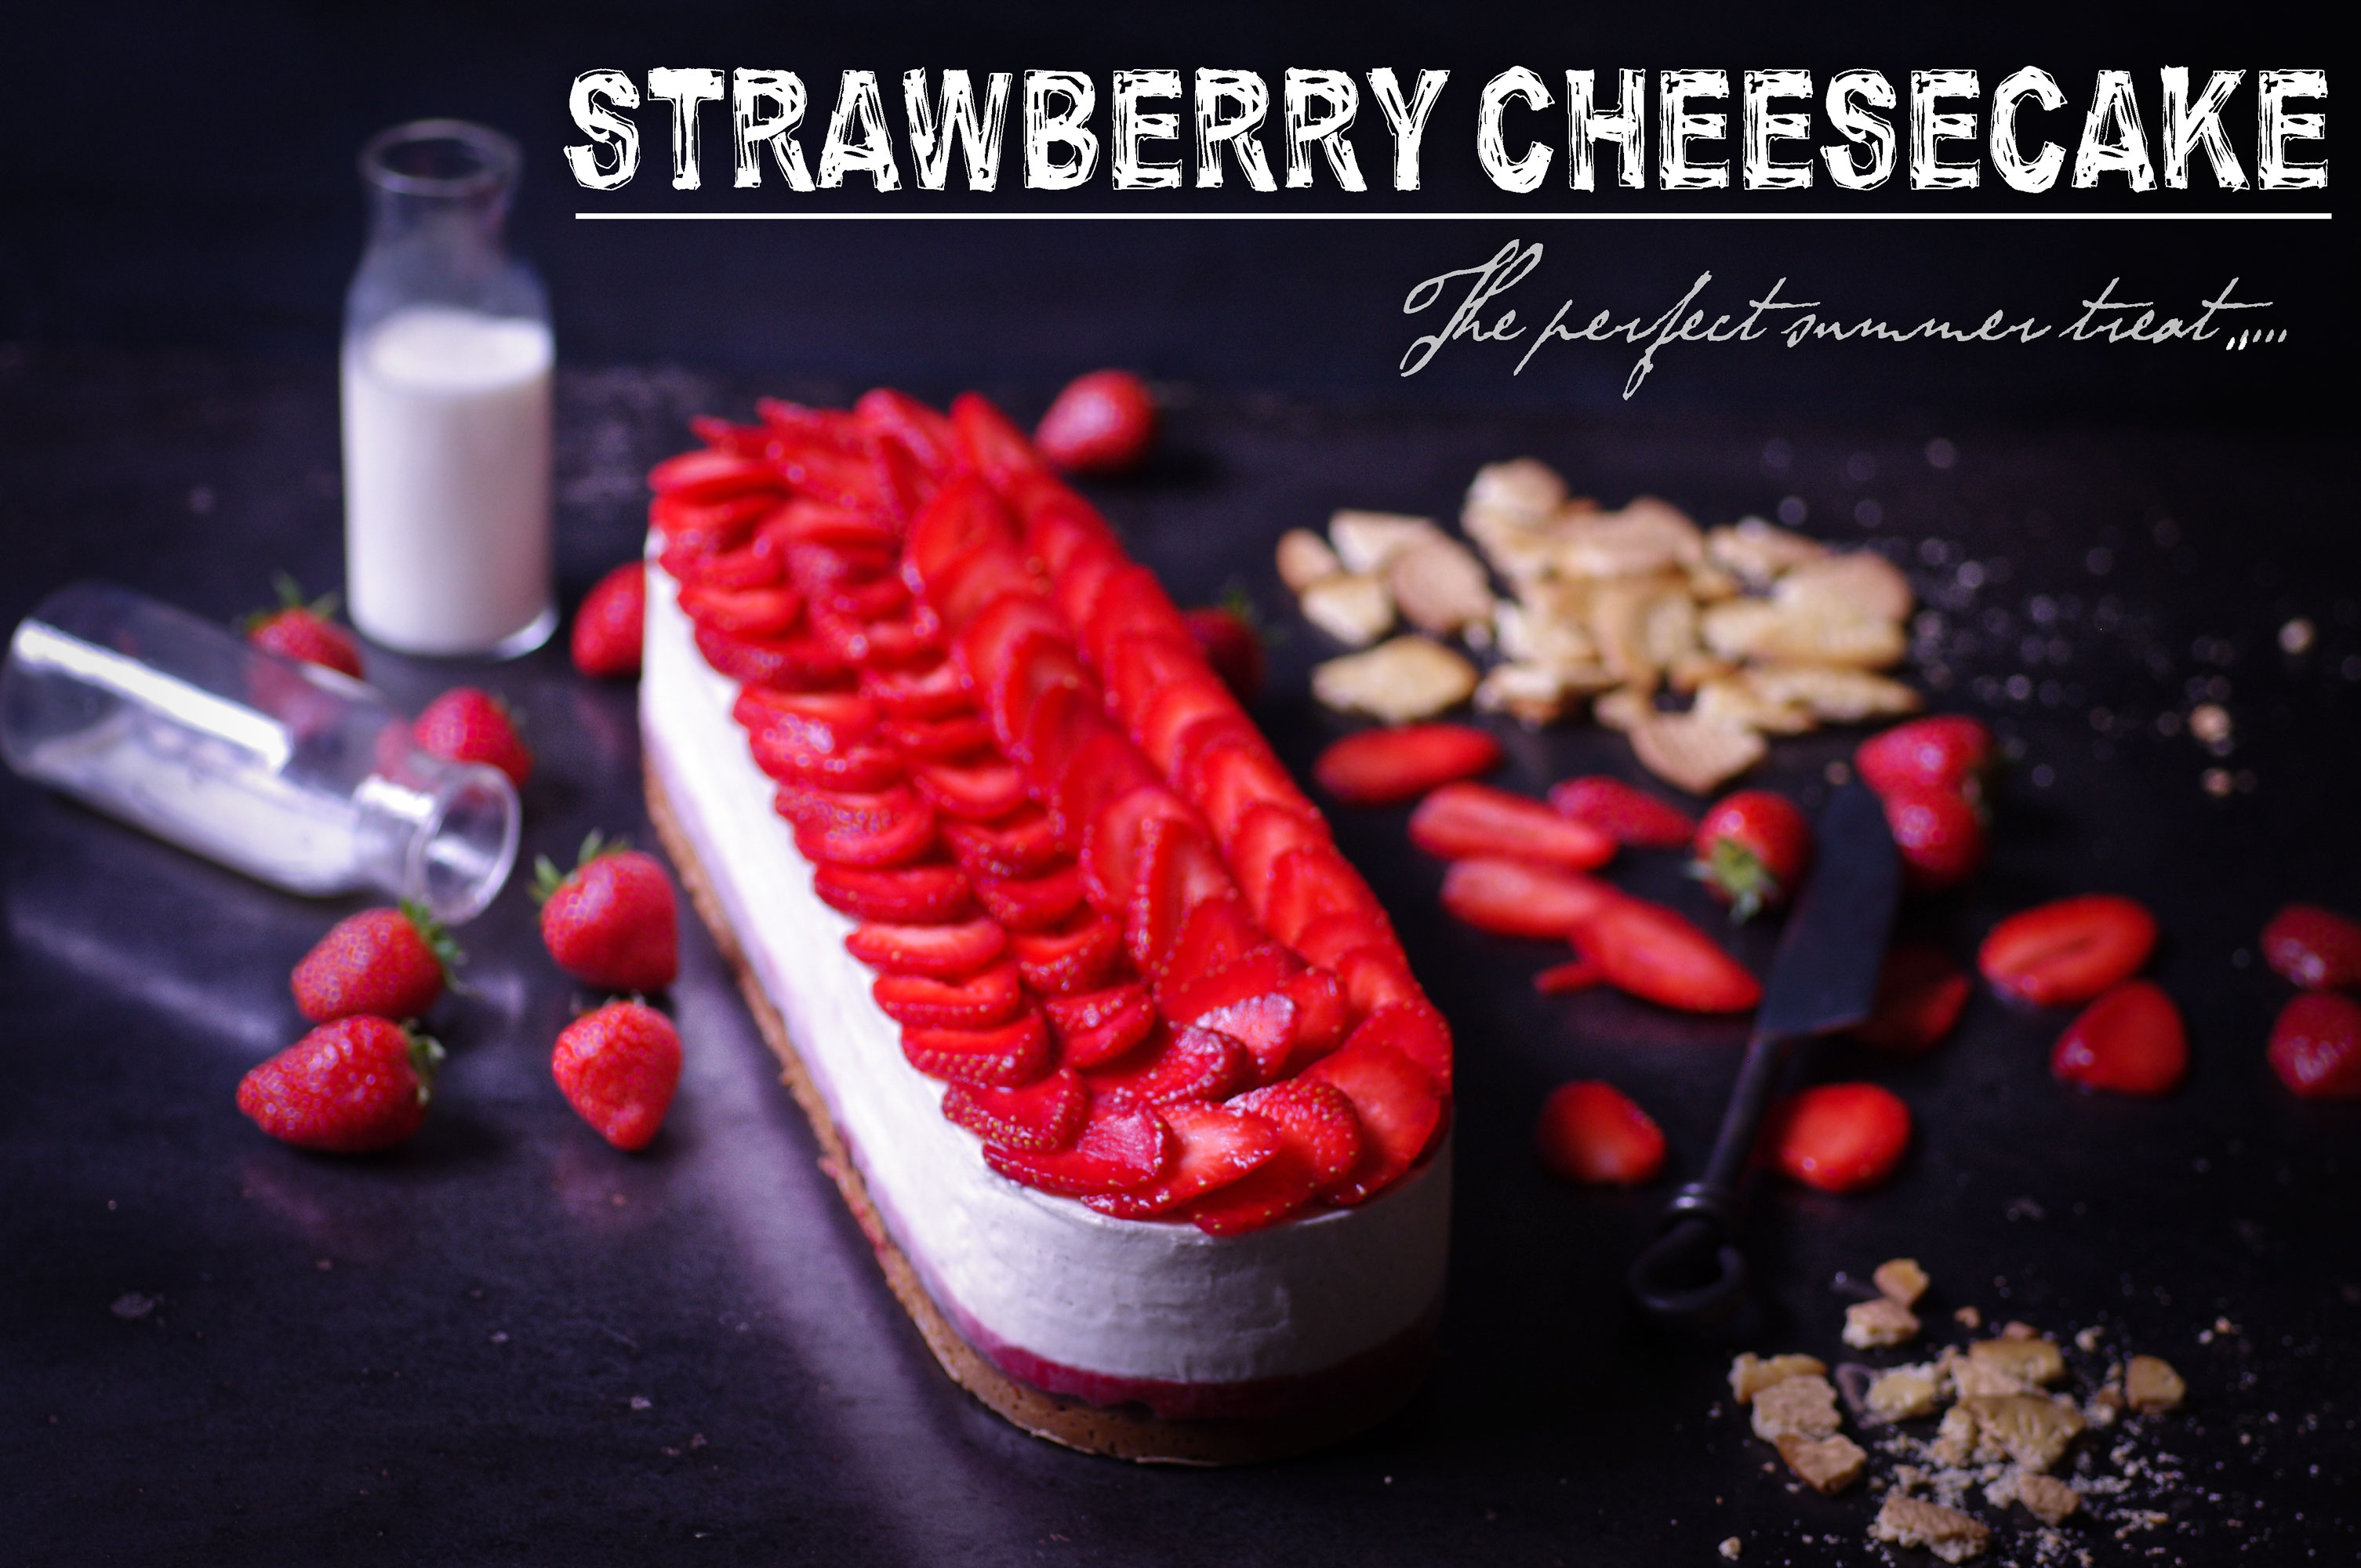 cheesecake, coco, citron vert, chavouoth, shavouhot, kosher, jewish, recipe, lime, cream cheese, blog, blogger, delicious, food, shavoutoh, philadefia, cream cheese, strawberry, fraise, lager, light